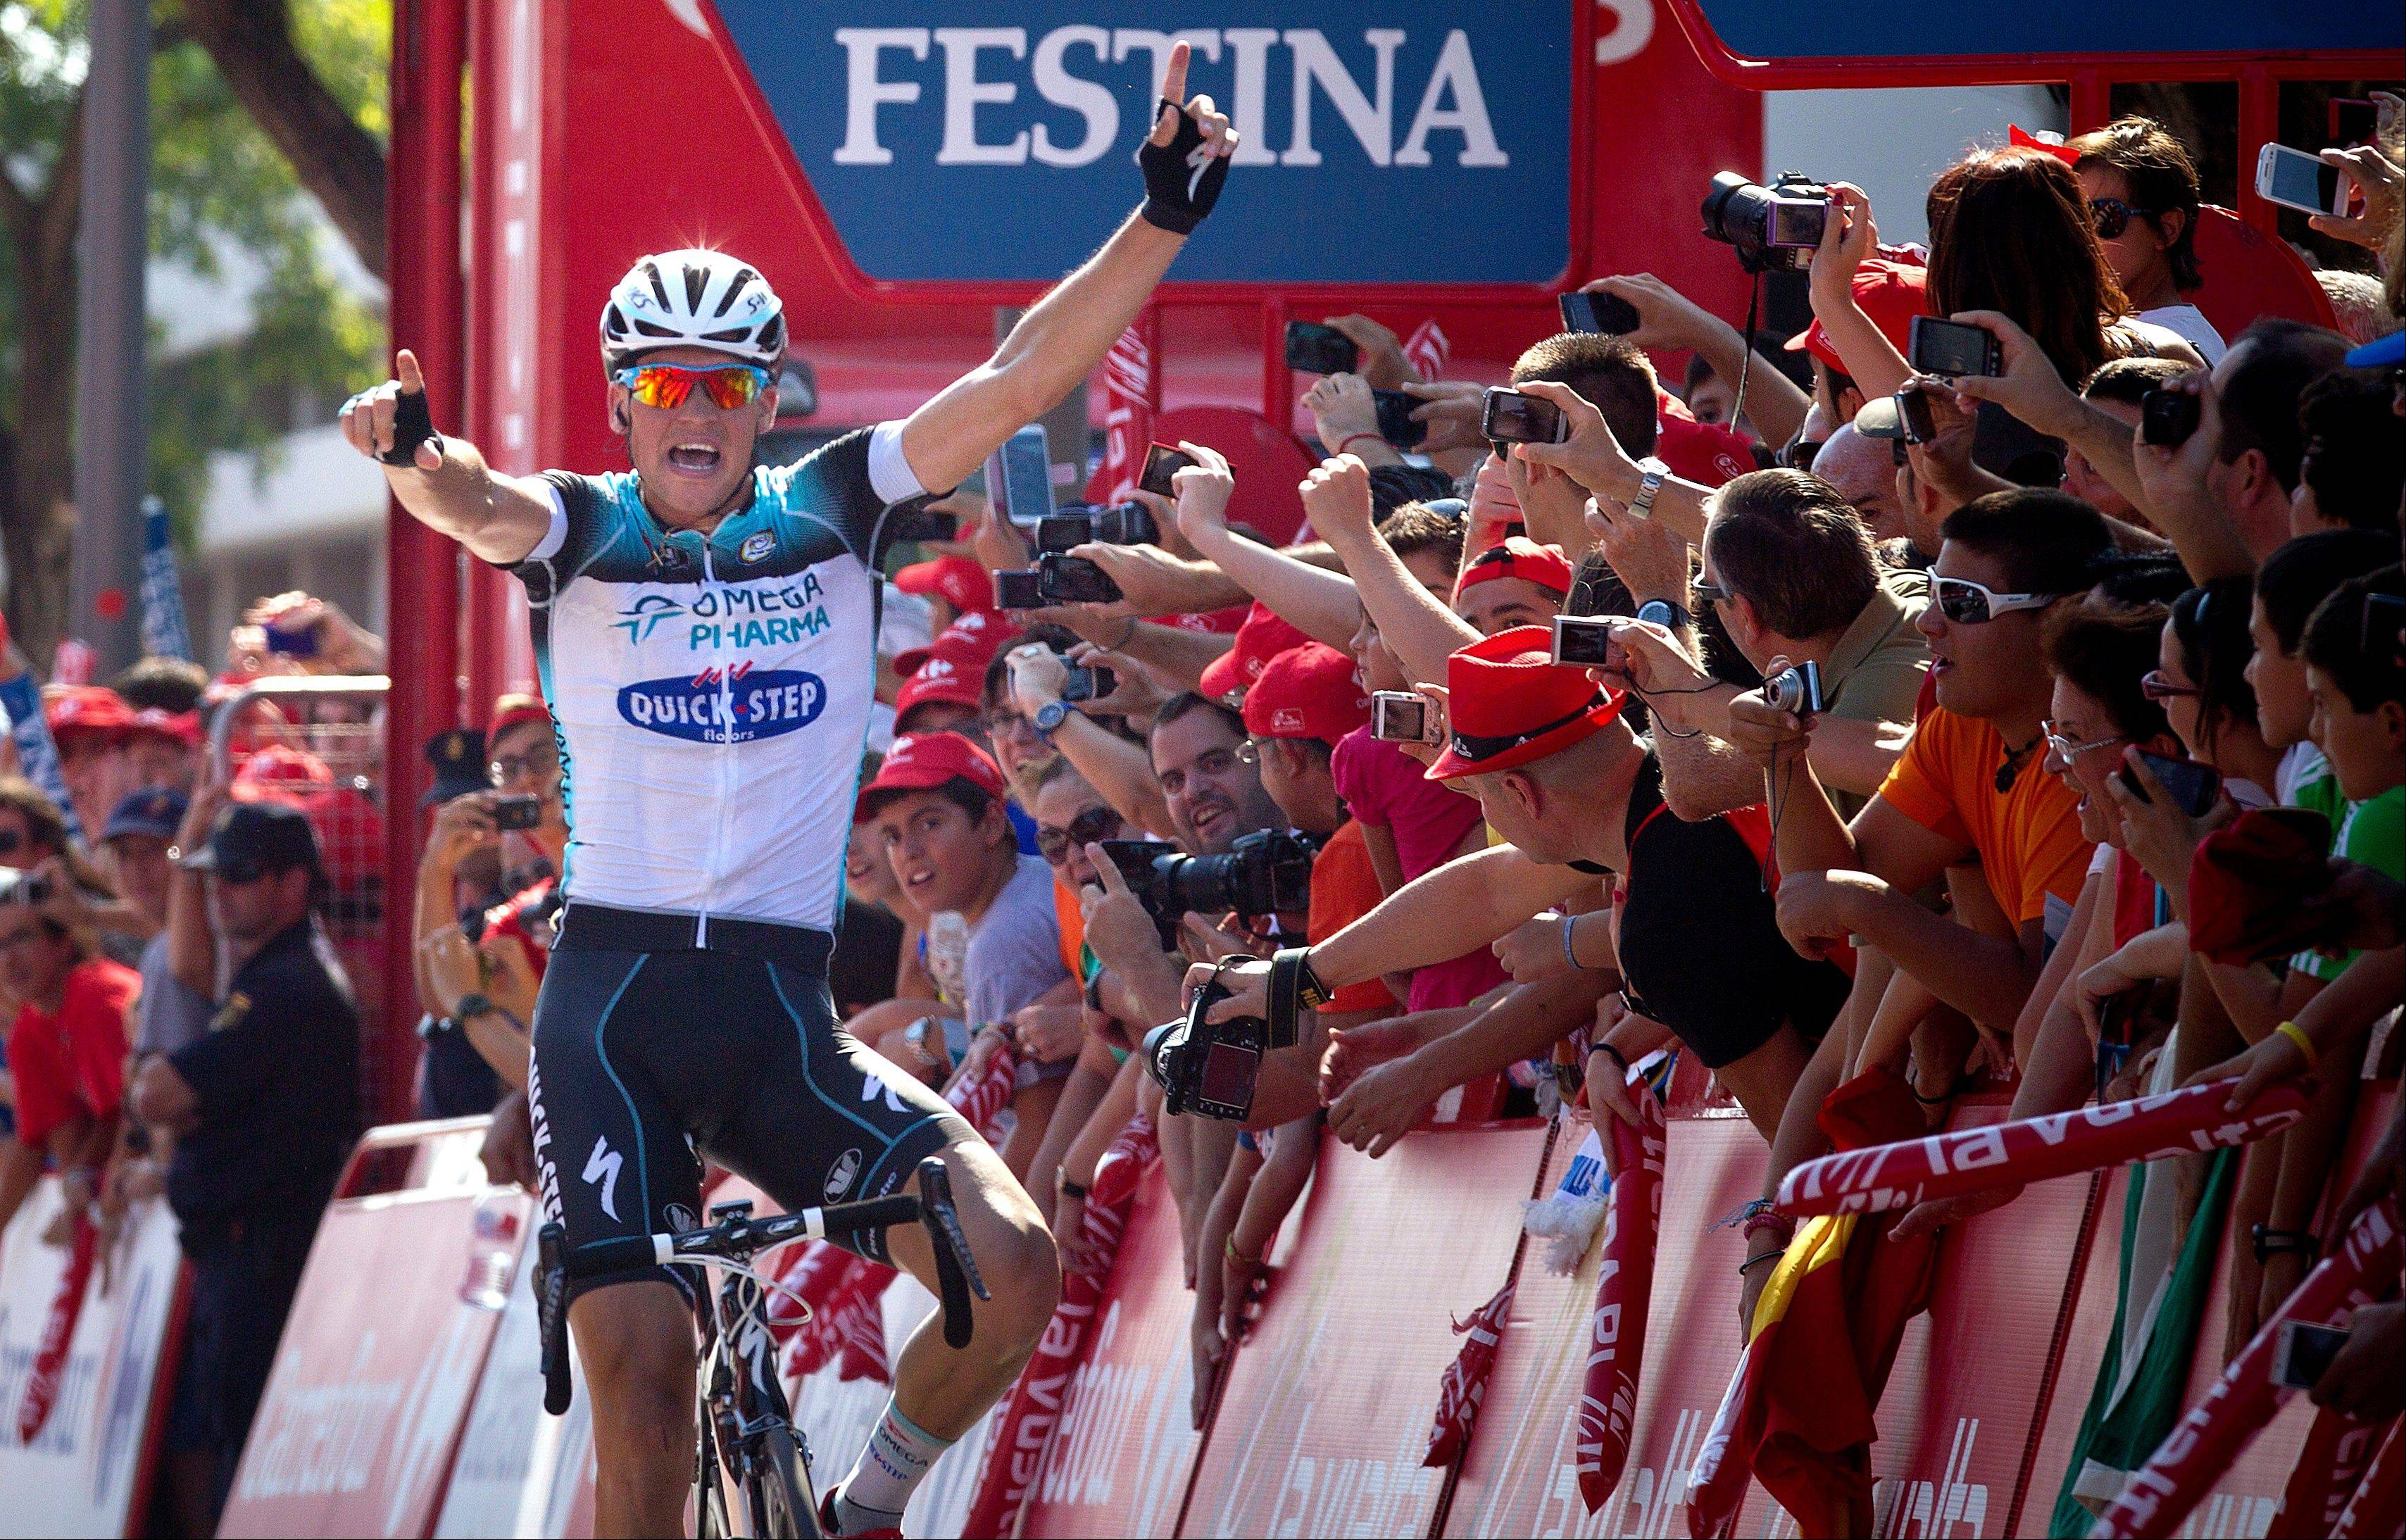 Czech Zdenek Stybar of team Omega Pharma-QuickStep celebrates as he crosses the finish line to win the seventh stage of the Spanish Vuelta on Friday in Mairena del Aljarafe.